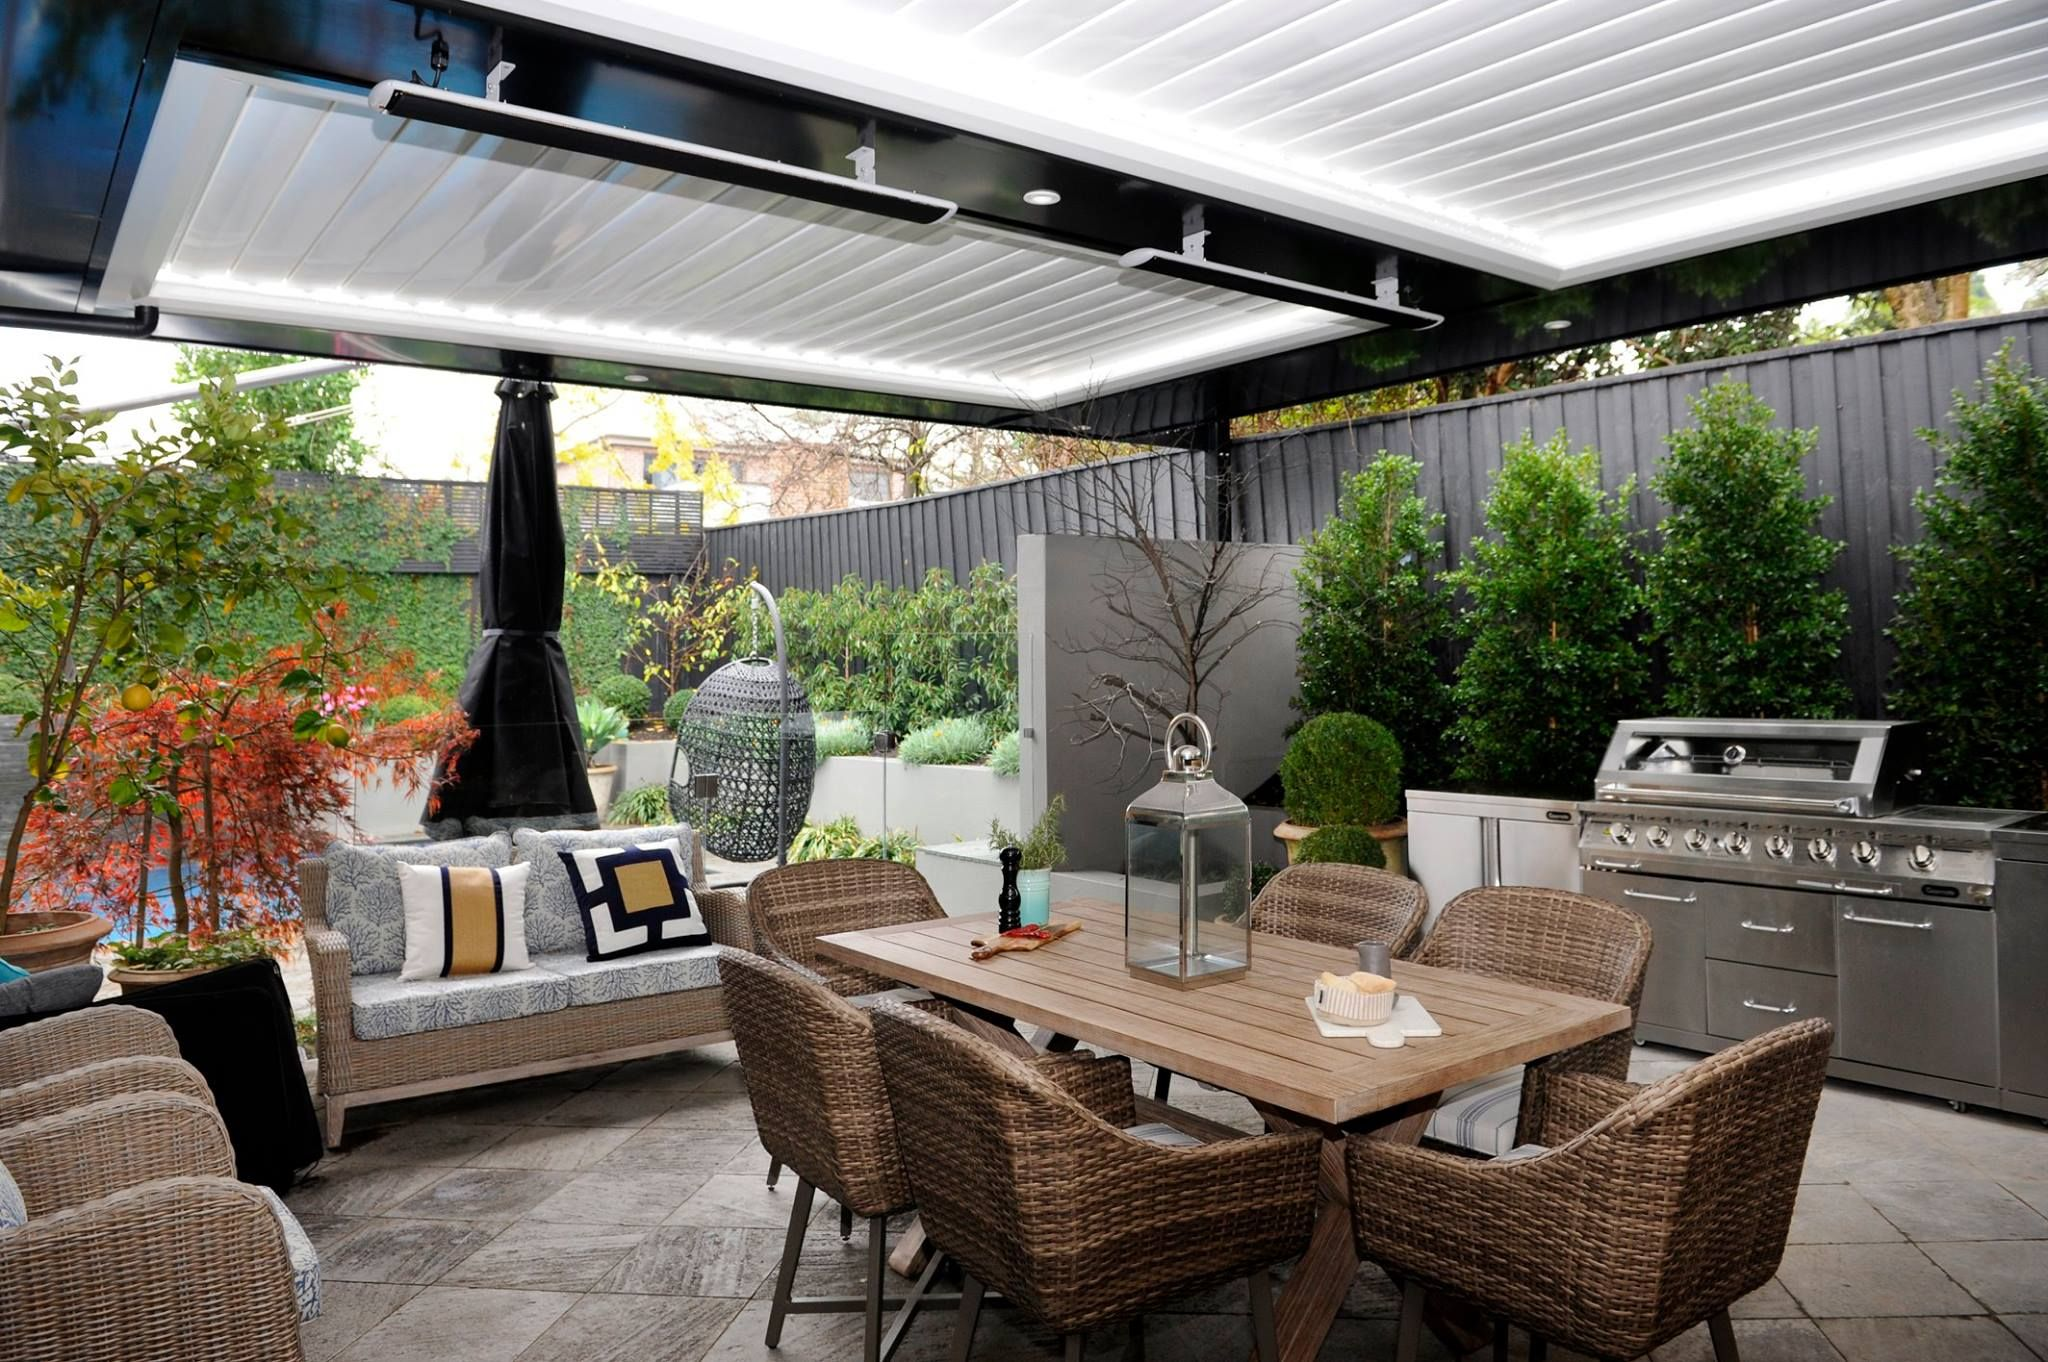 Pin by Nicole Raven on For the garden | Outdoor ... on Indoor Outdoor Entertaining Areas id=39941